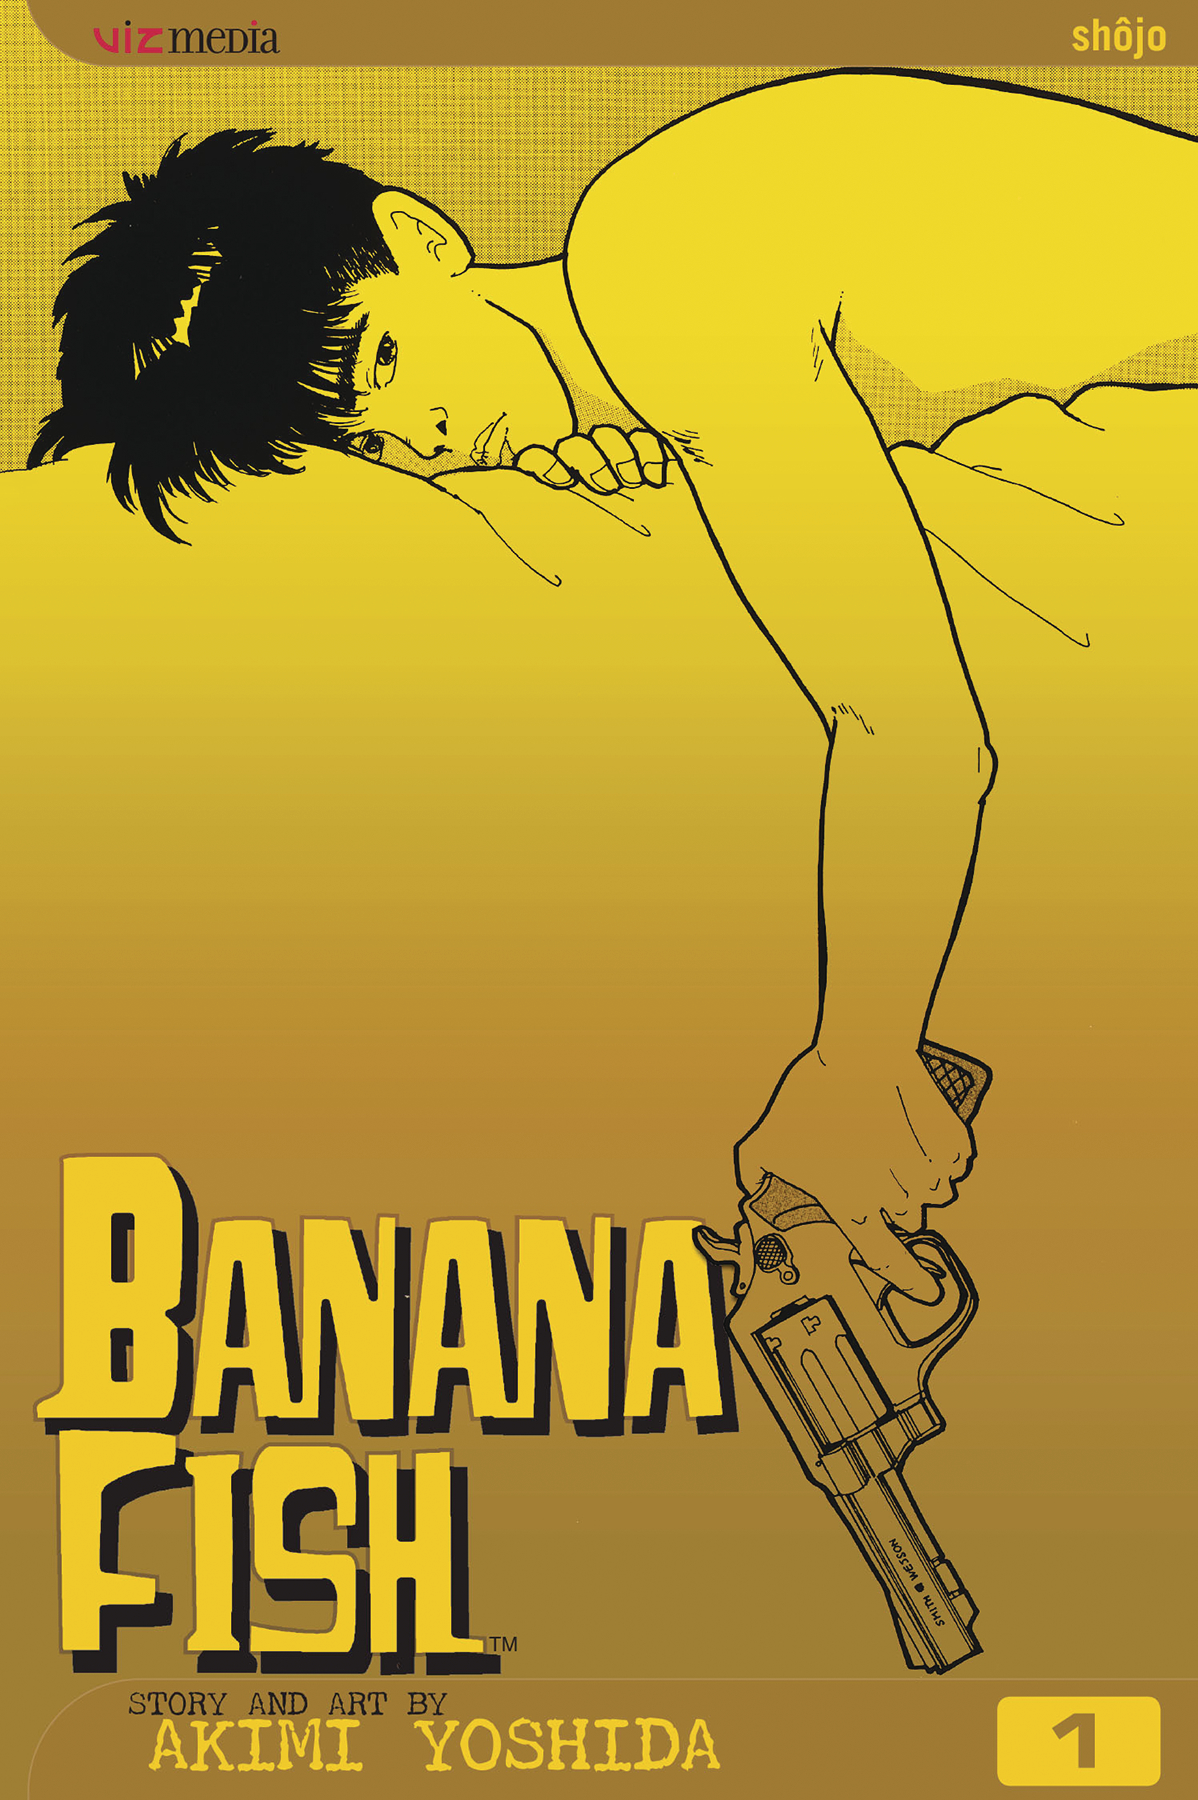 BANANA FISH GN VOL 01 (CURR PTG) (JAN042802) (MR)